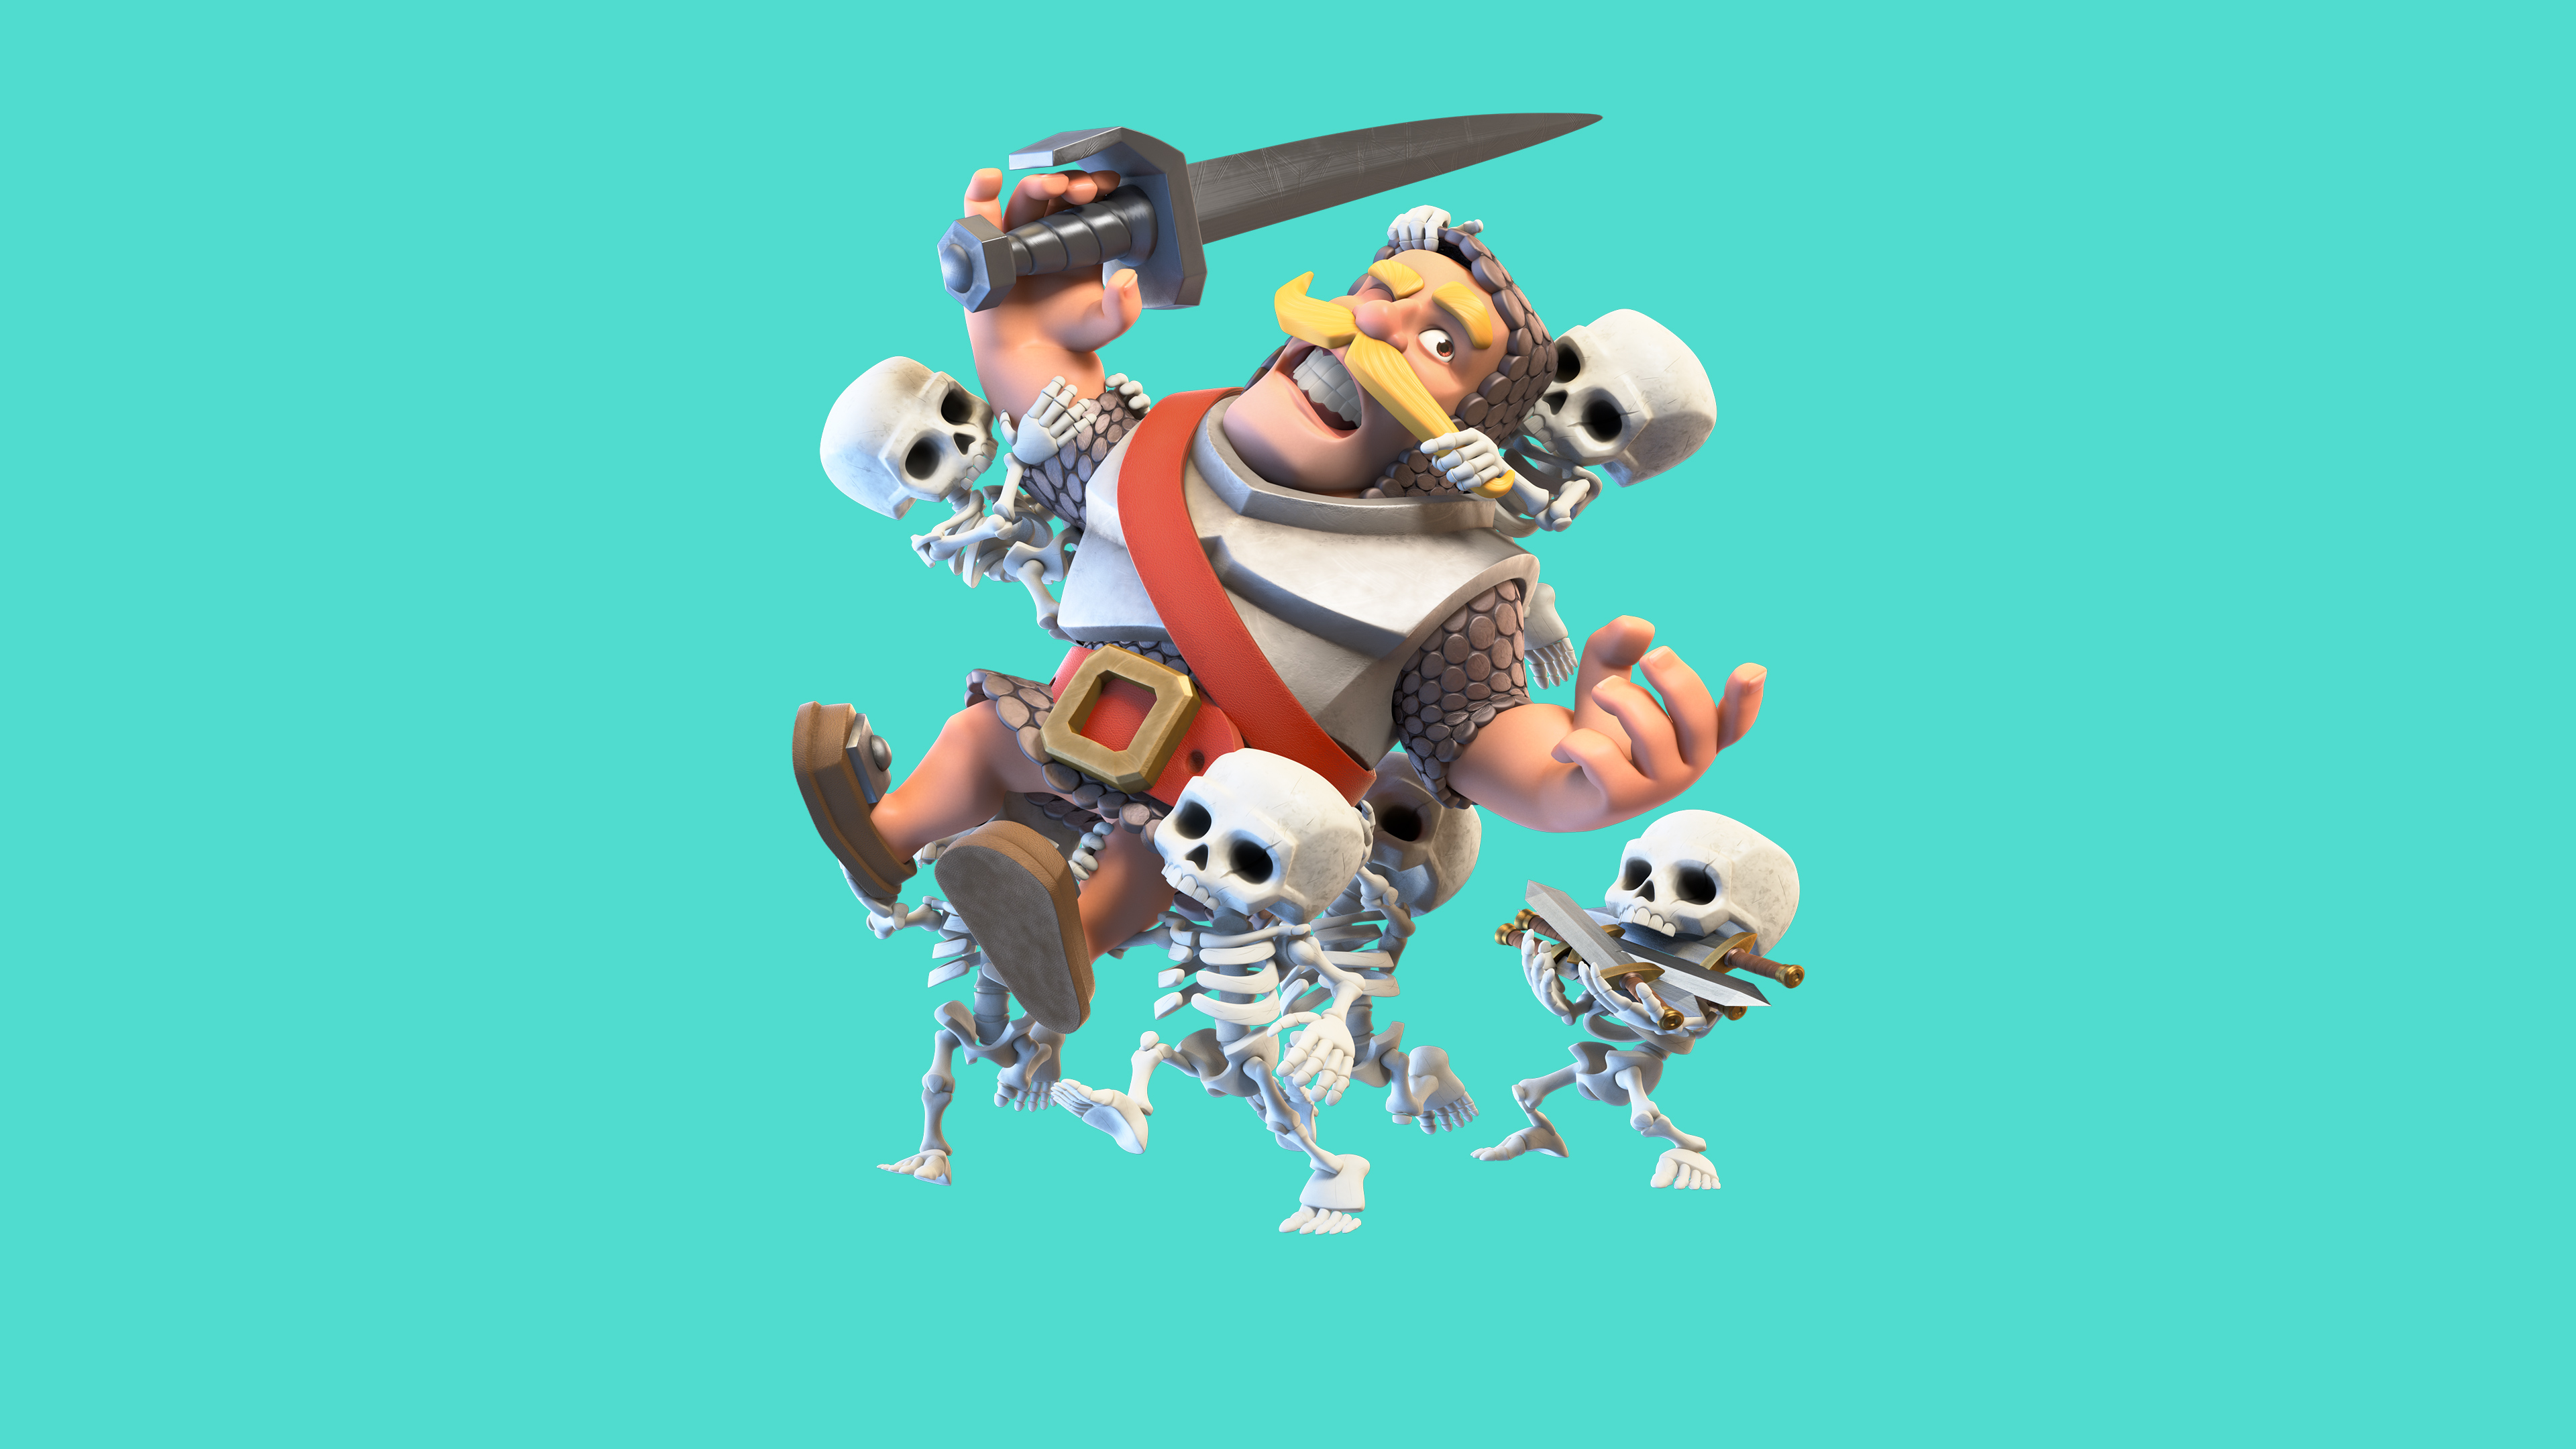 Clash royale knight and skelton hd games 4k wallpapers images backgrounds photos and pictures - Clash royale 2560x1440 ...